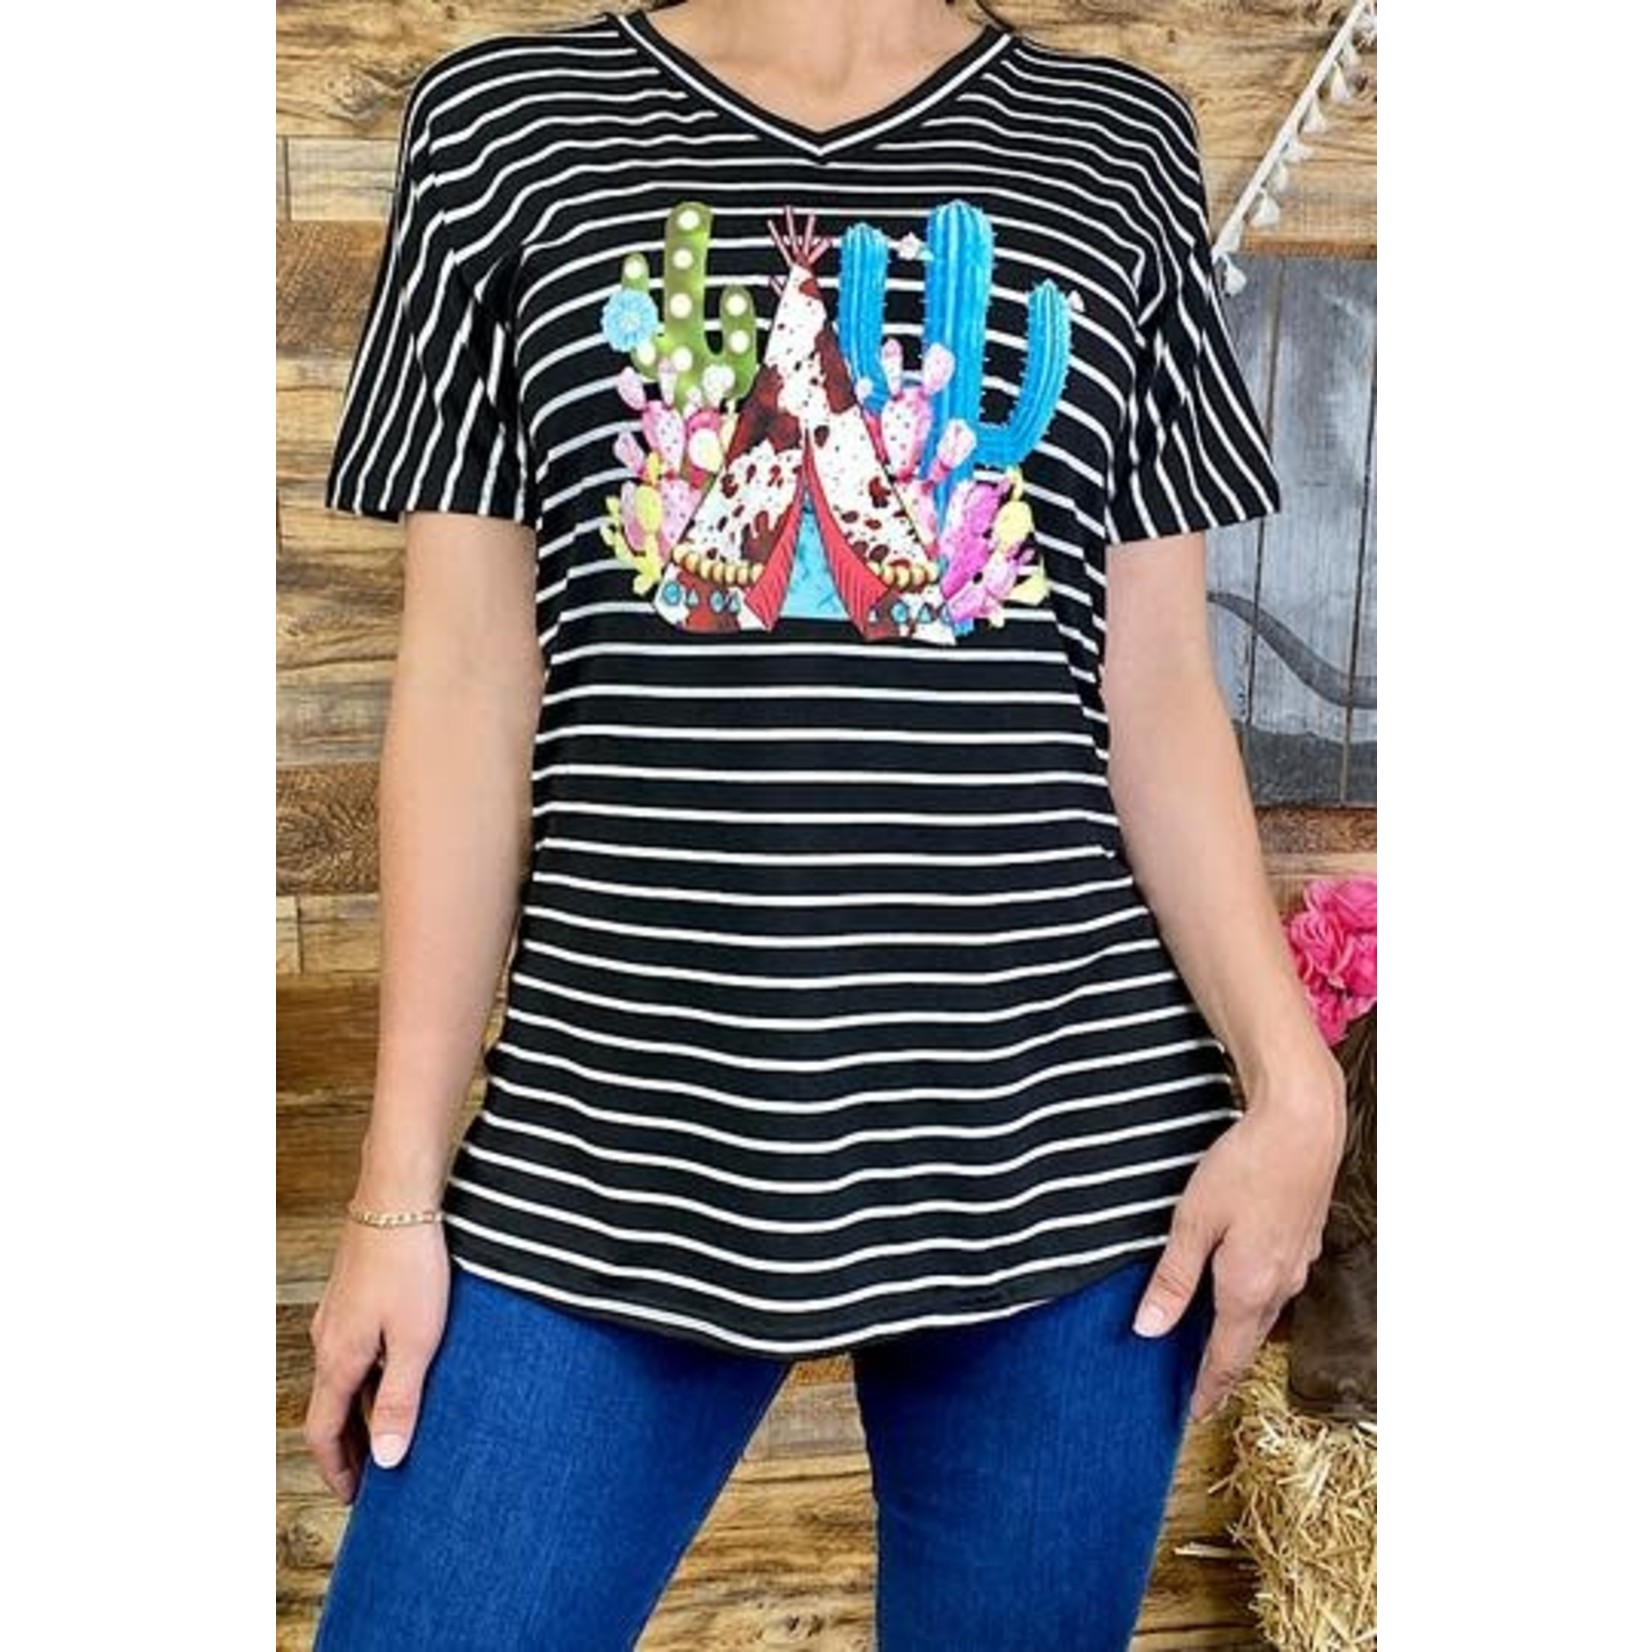 Southern Stitch Black/White Striped Cactus TeePee Top